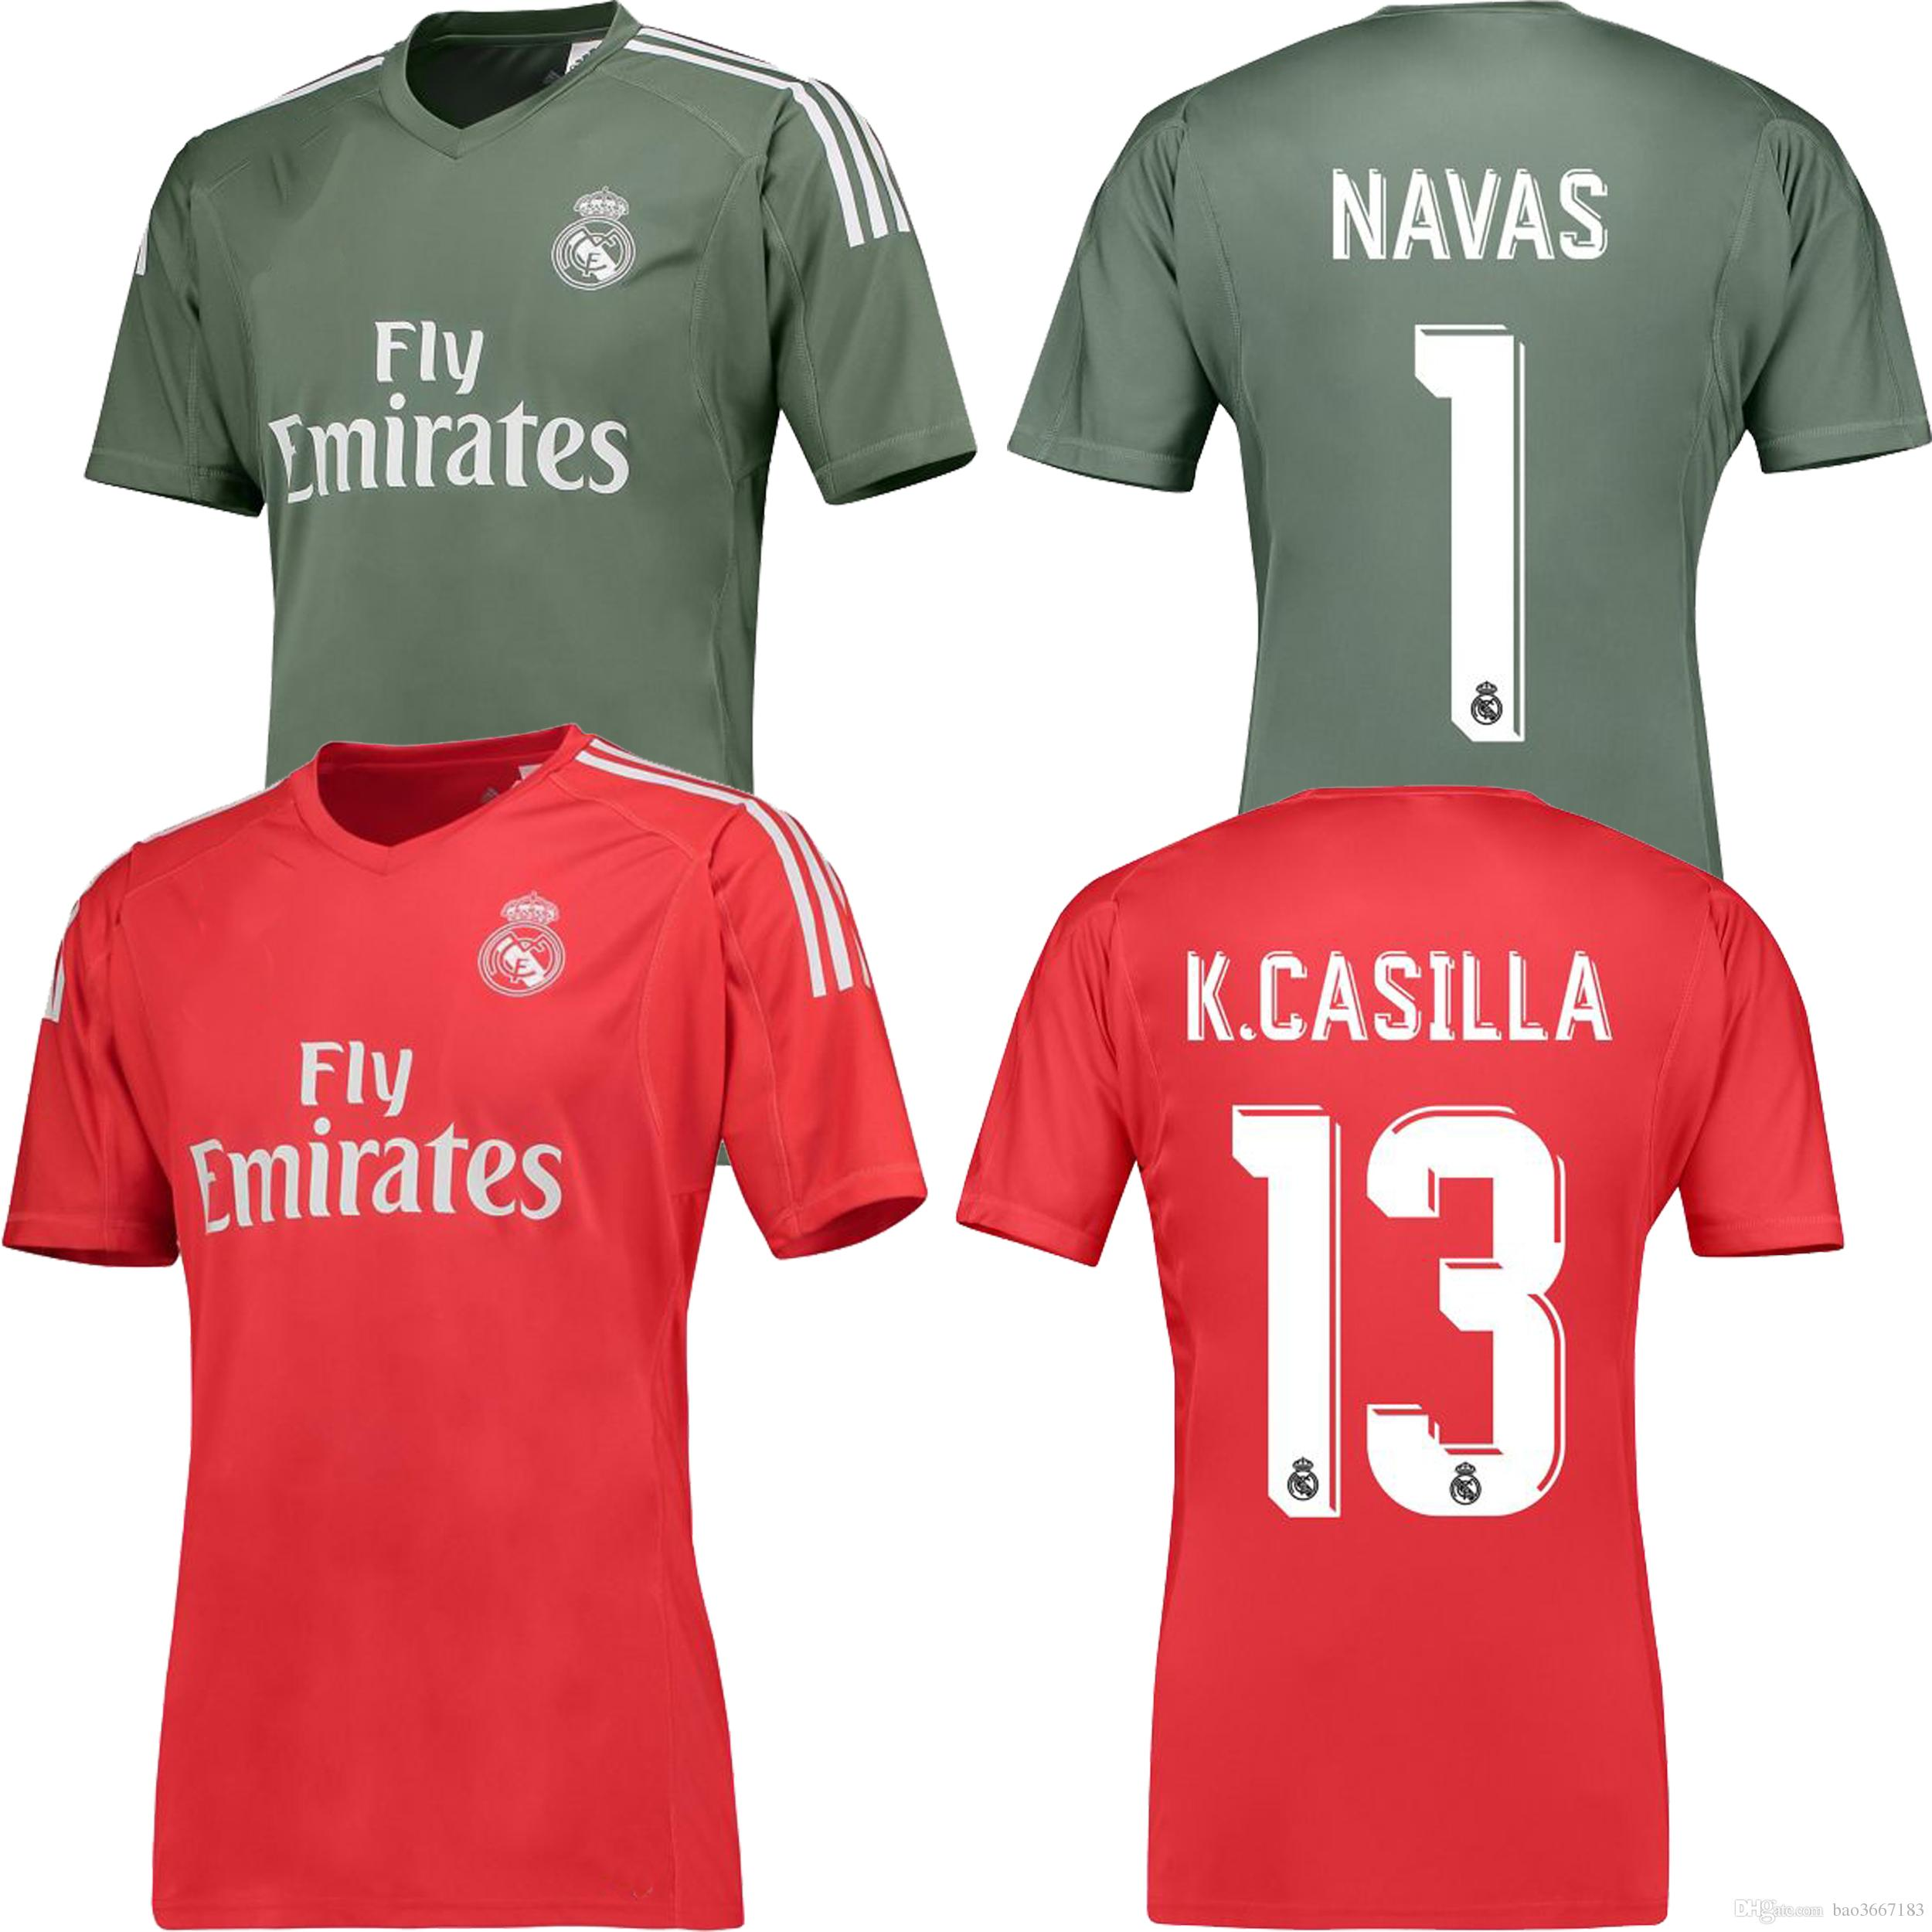 Maillot THIRD Real Madrid Navas